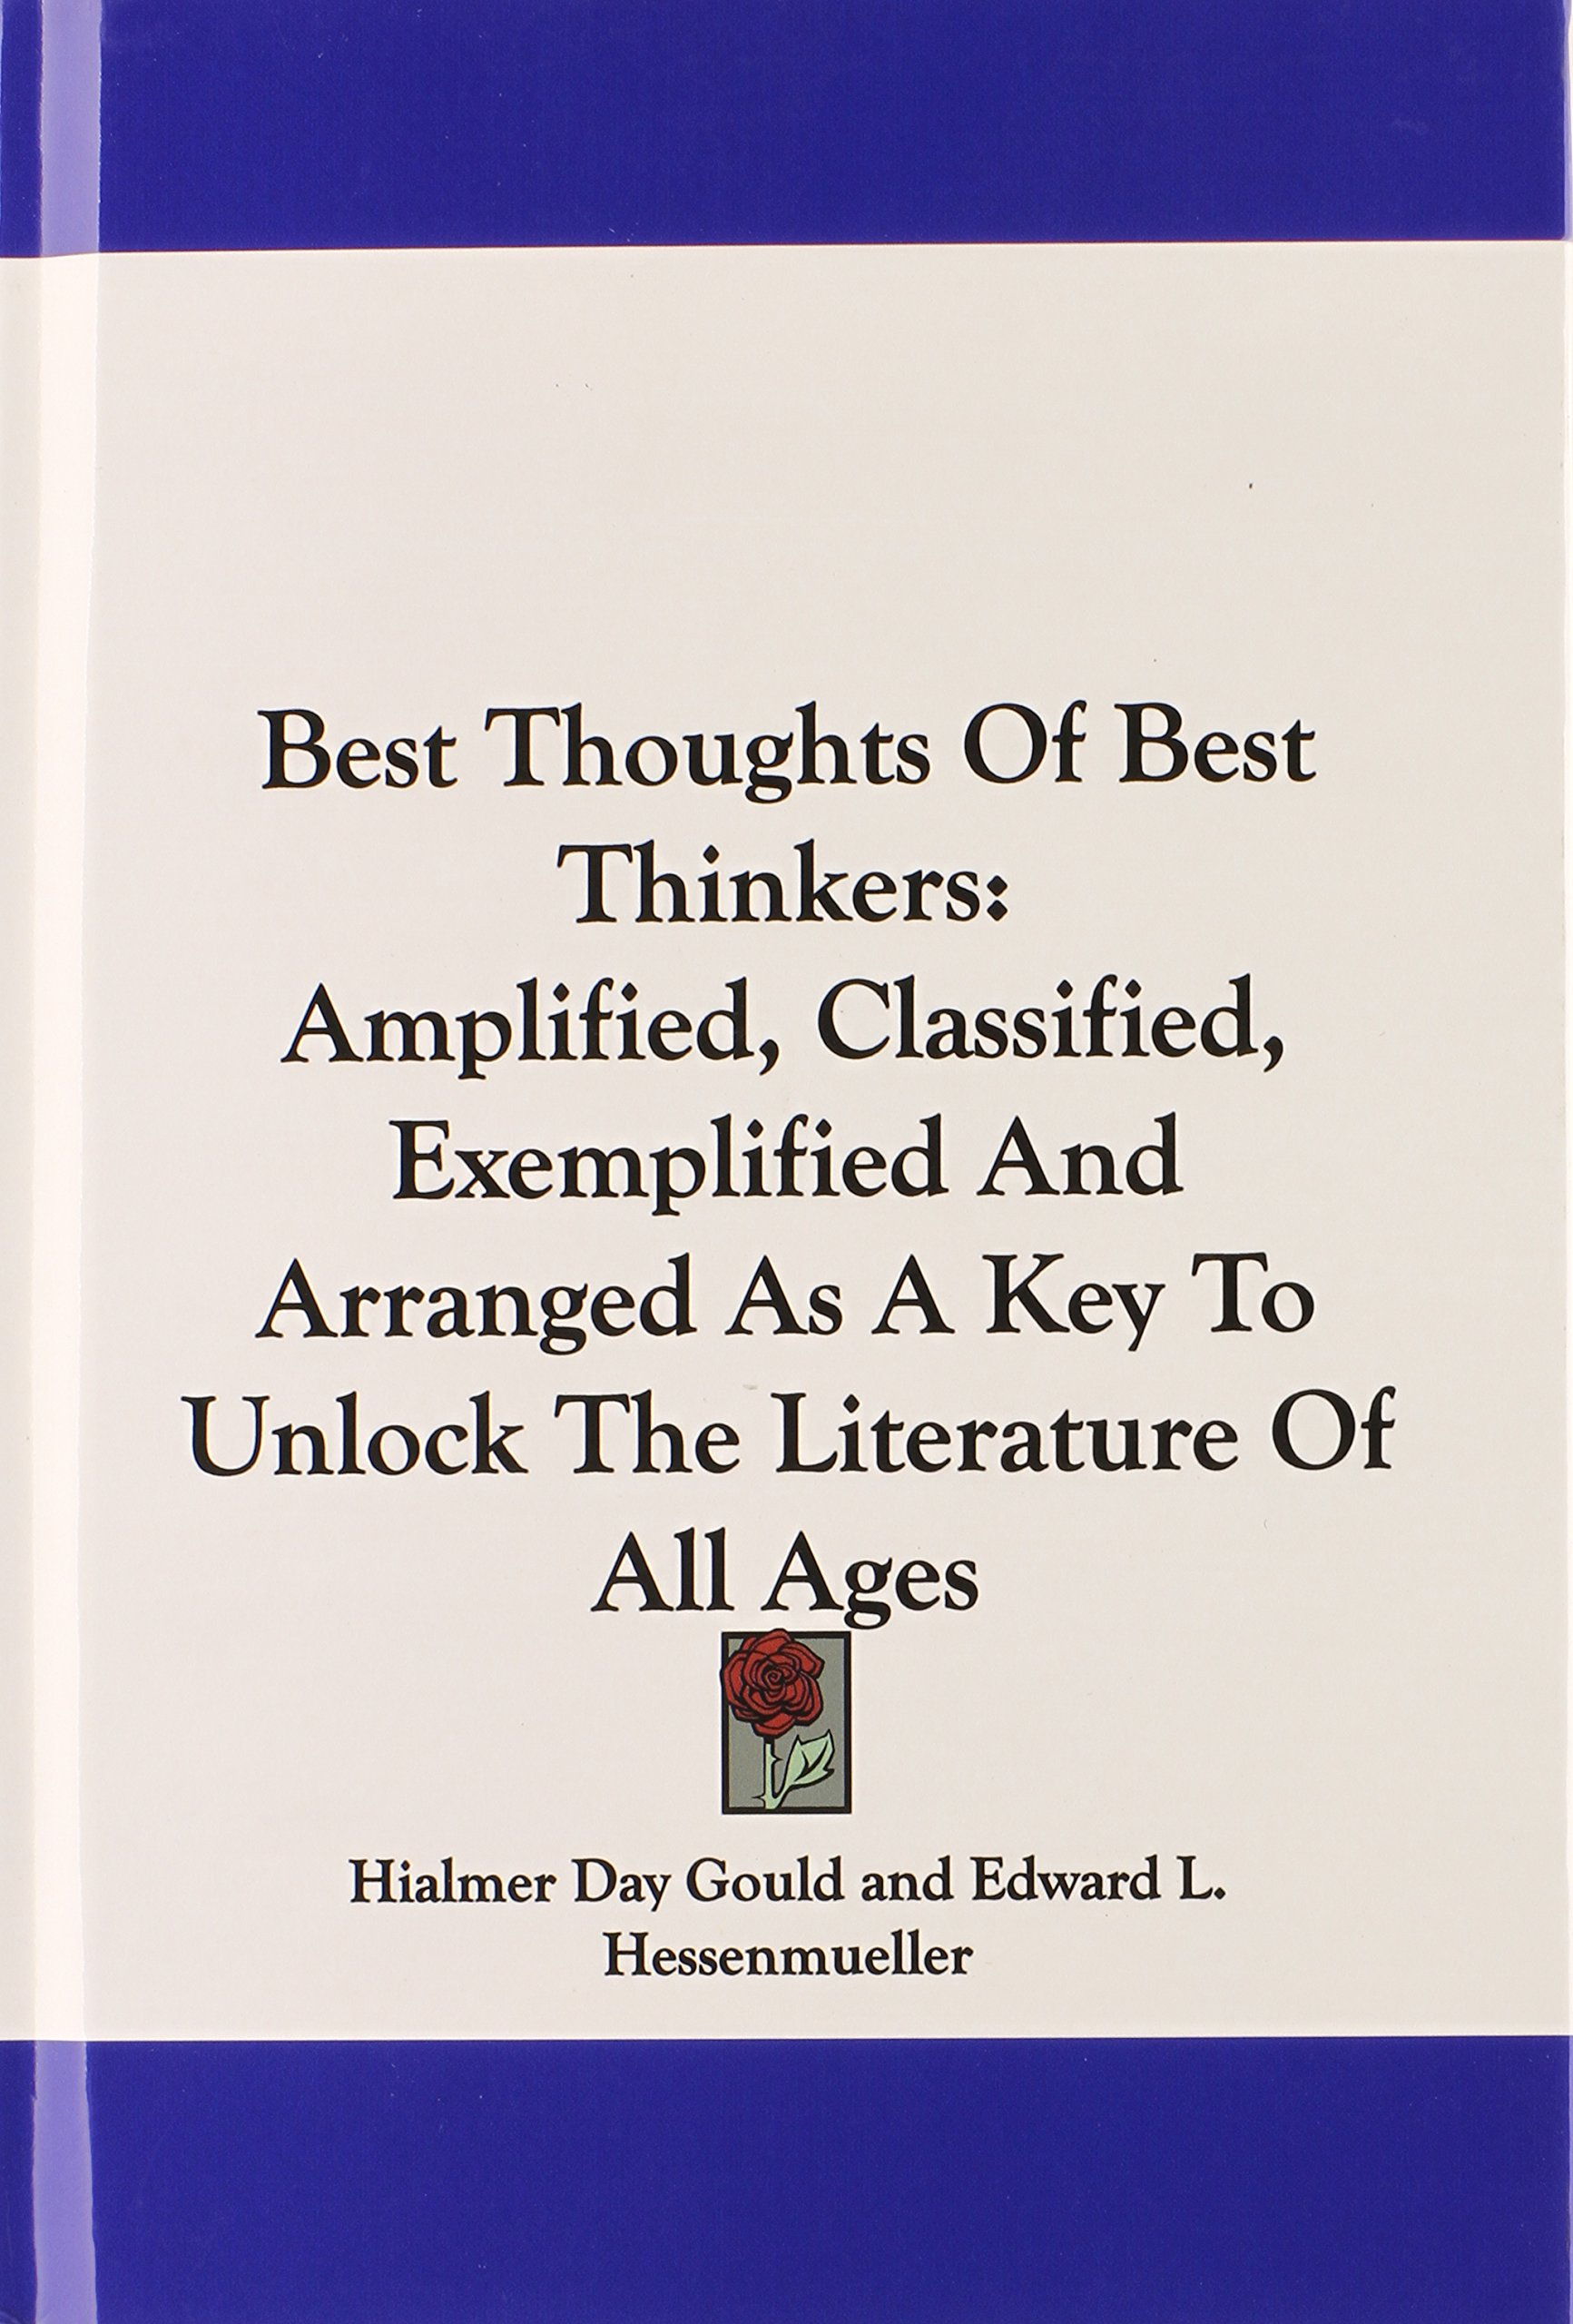 Read Online Best Thoughts Of Best Thinkers: Amplified, Classified, Exemplified And Arranged As A Key To Unlock The Literature Of All Ages PDF